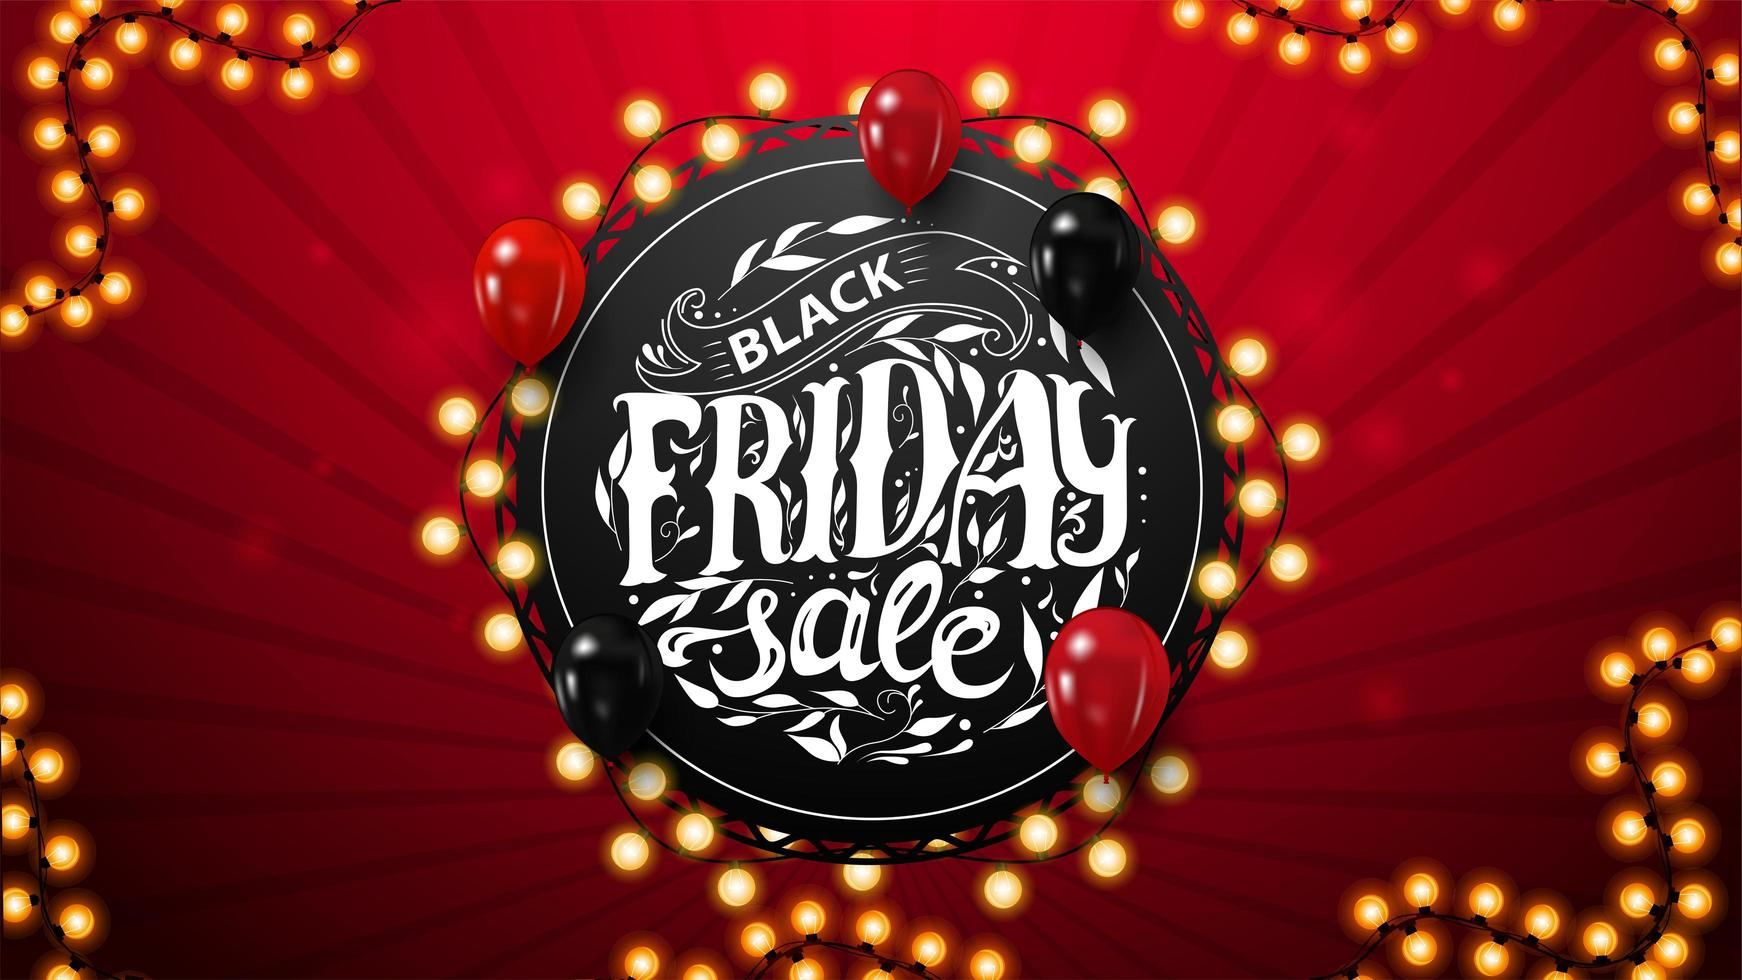 Black Friday Sale, discount coupon with round lettering vector